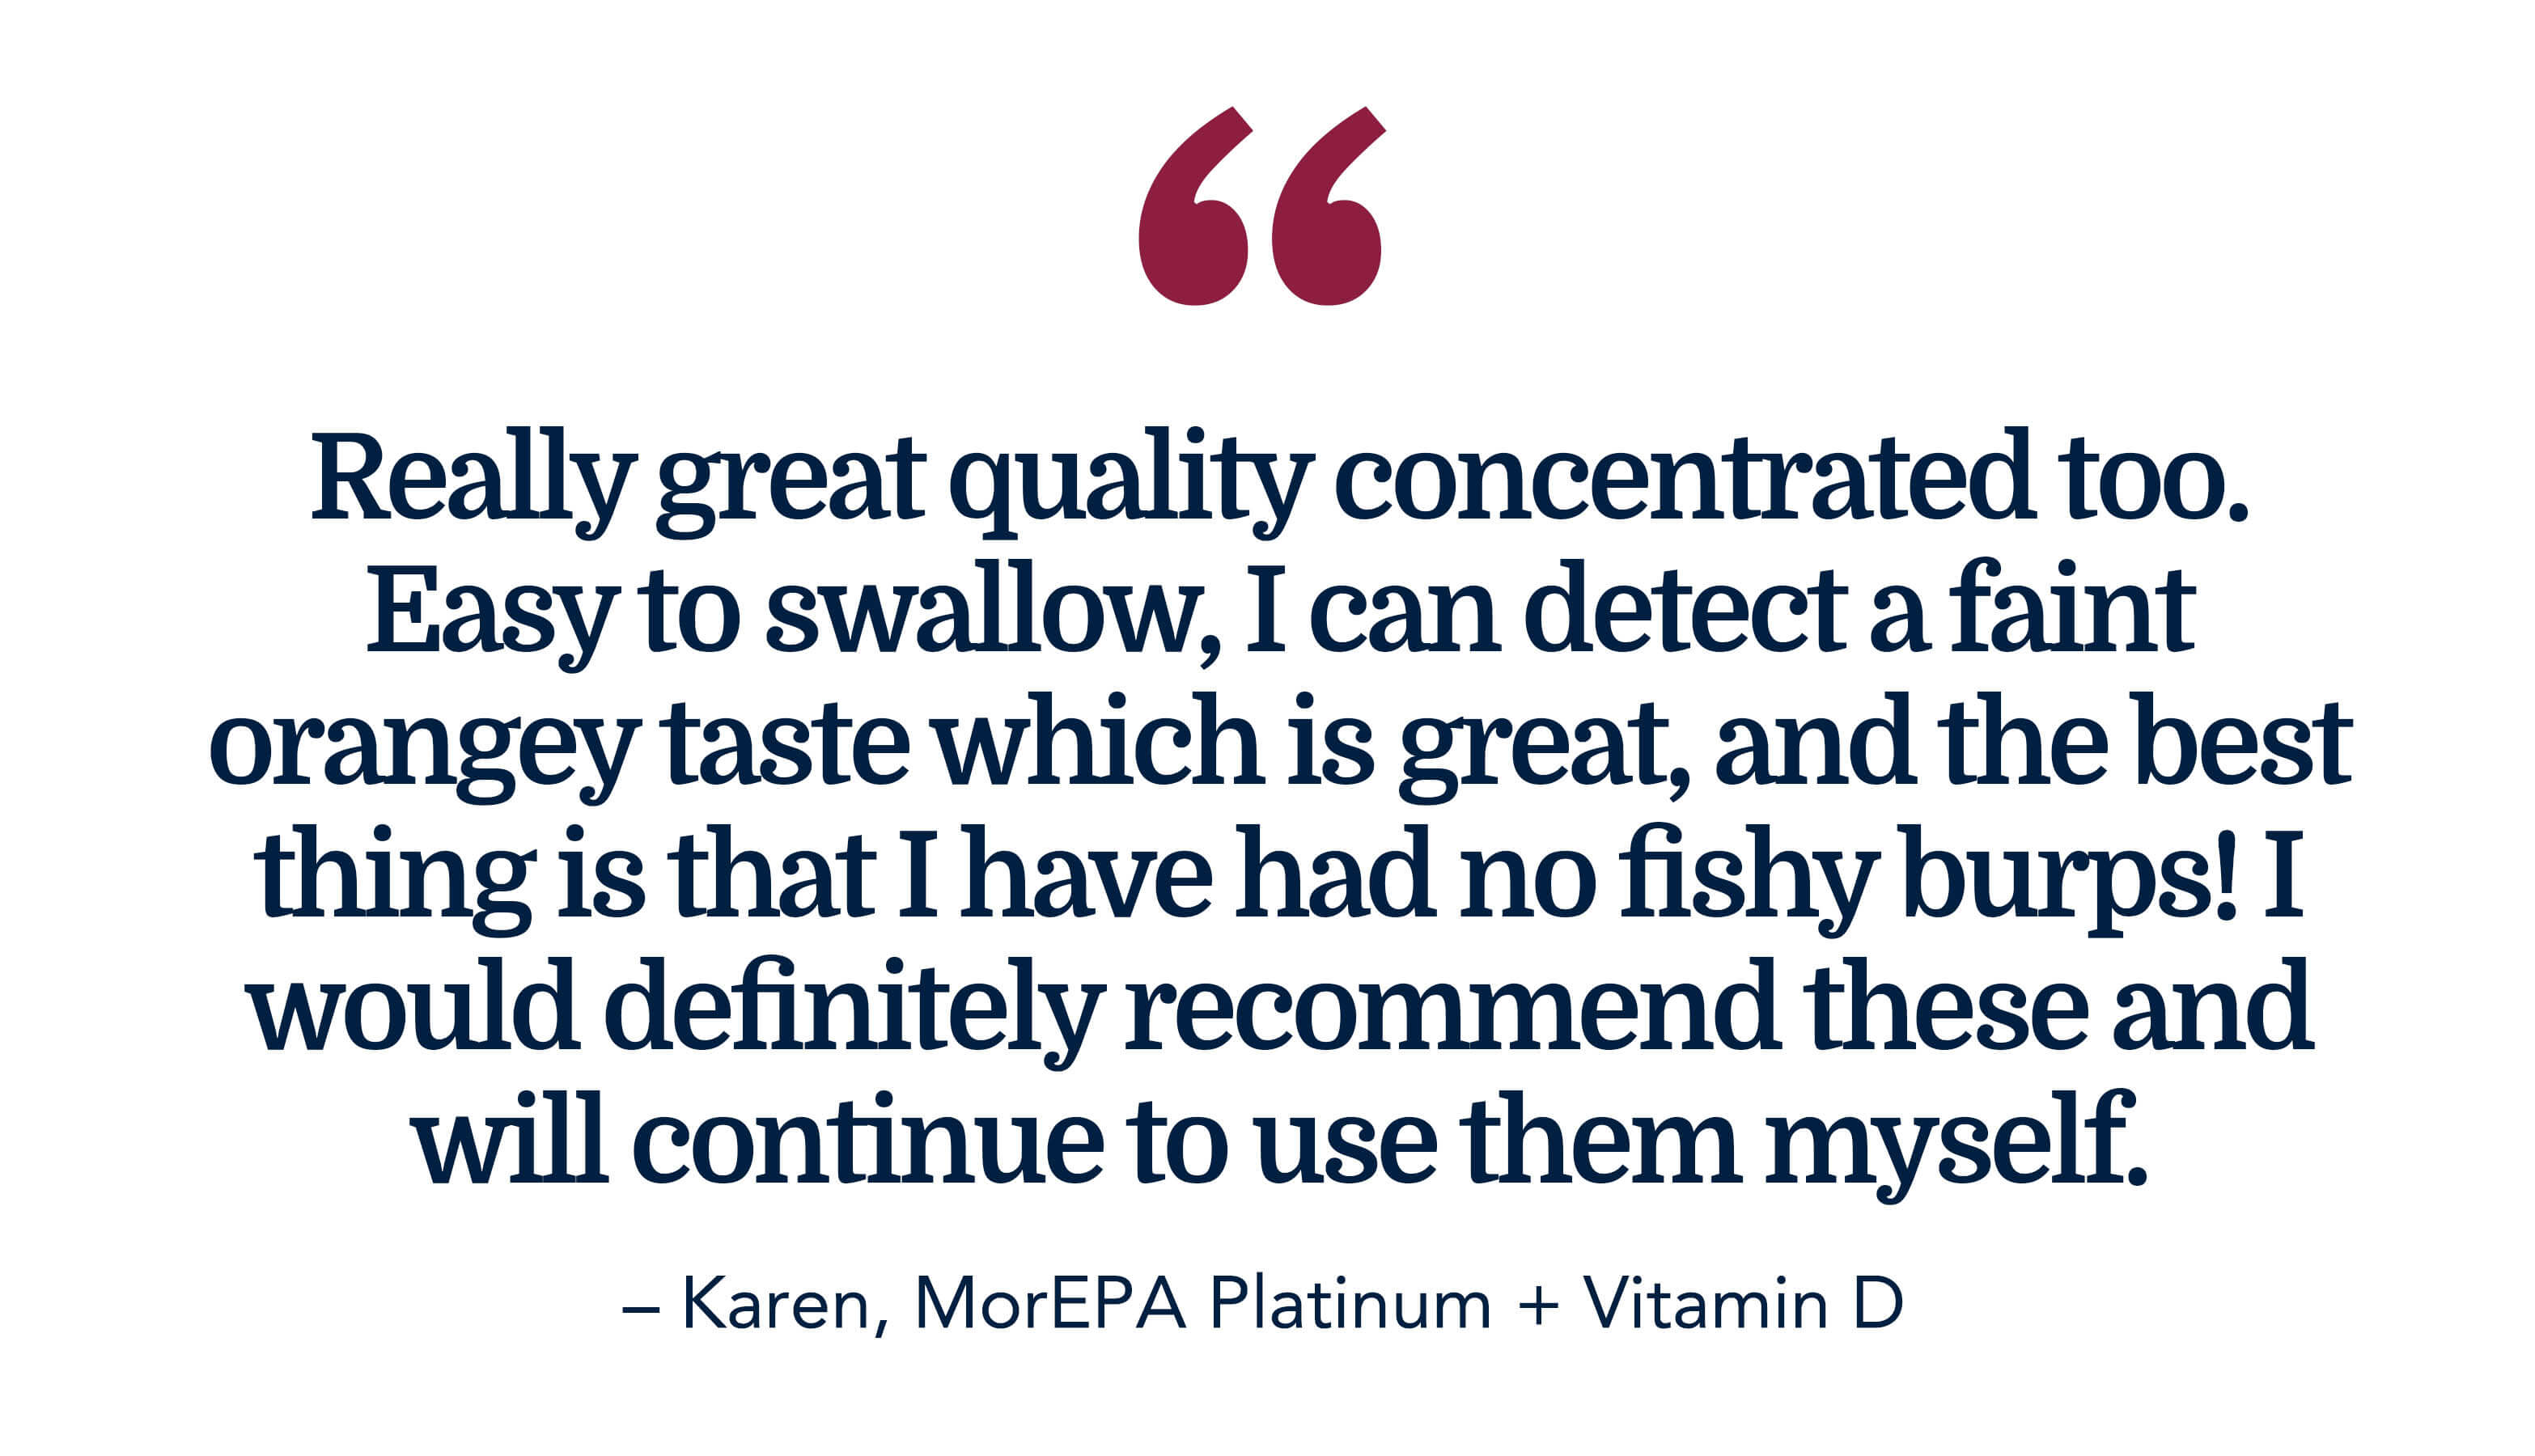 Really great quality concentrated too. Easy to swallow, I can detect a faint orangey taste which is great and the best thing is that I have had no fishy burps! I would definitely recommend this and will continue to use them myself. - Karen, MorEPA Platinum + Vitamin D